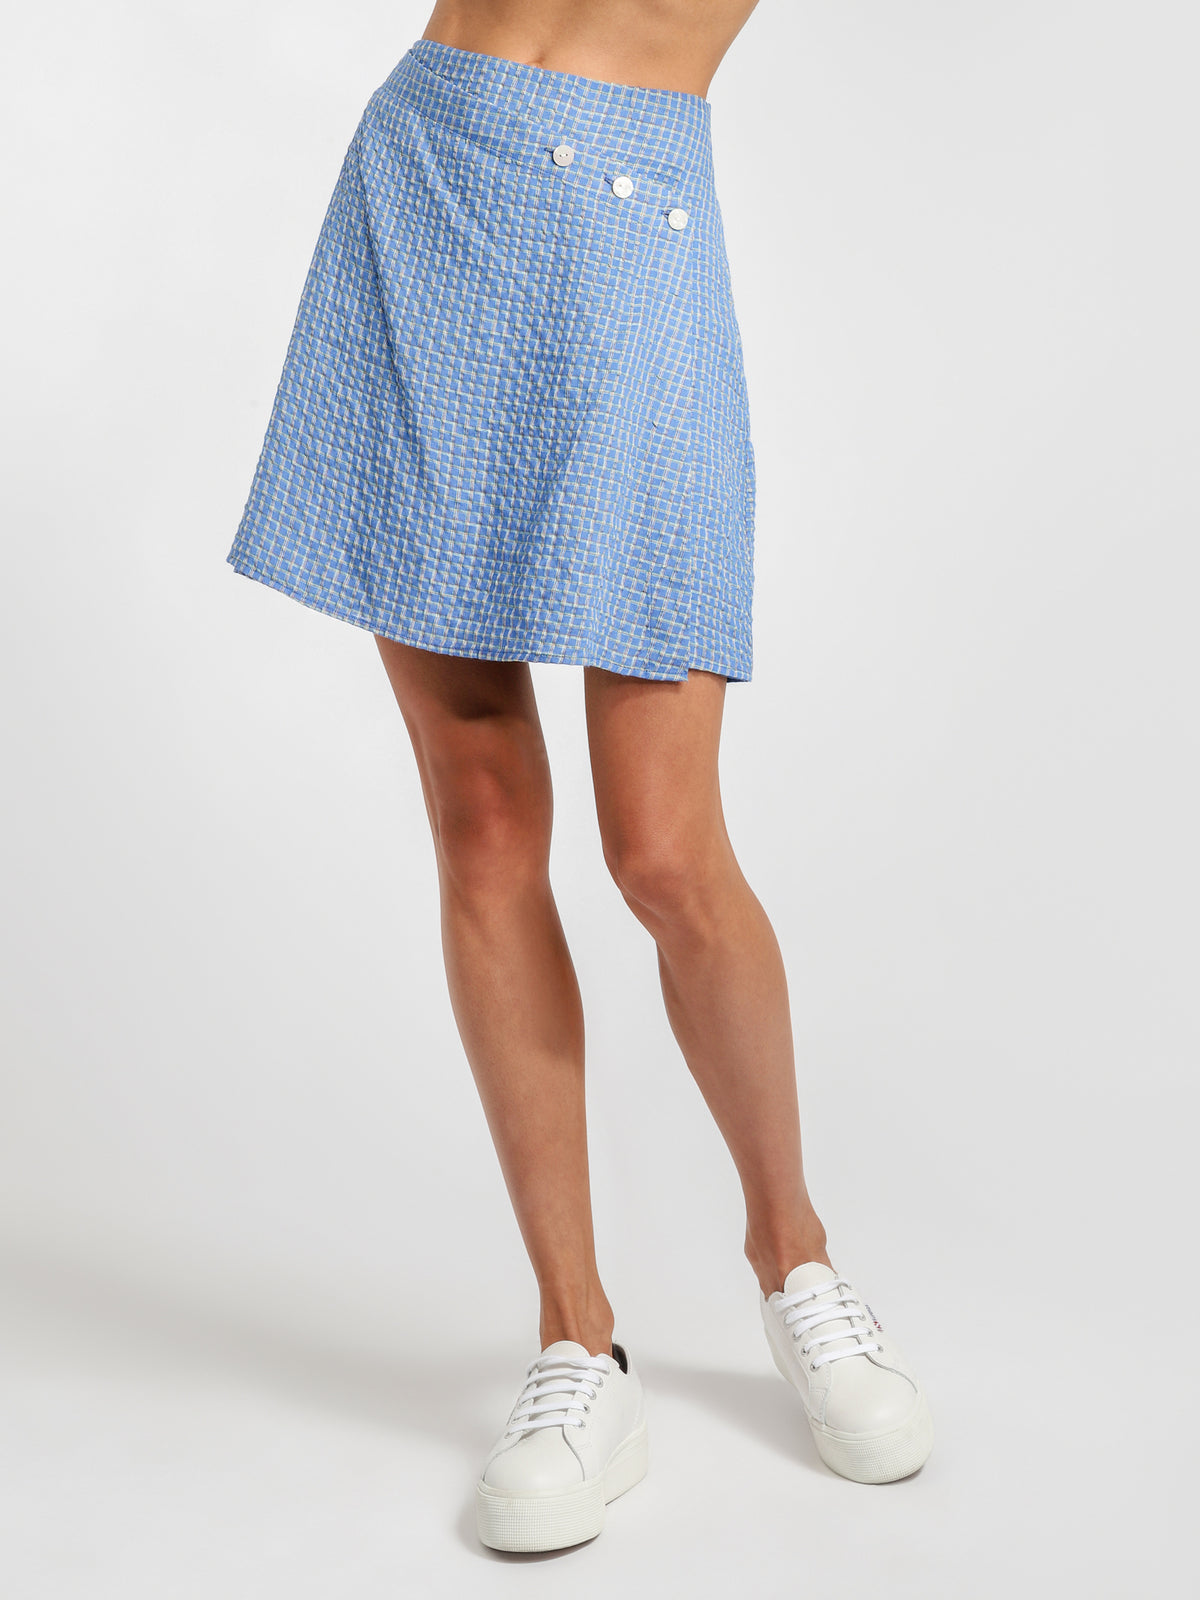 Mahlia Wrap Skirt in Cobalt Blue Check